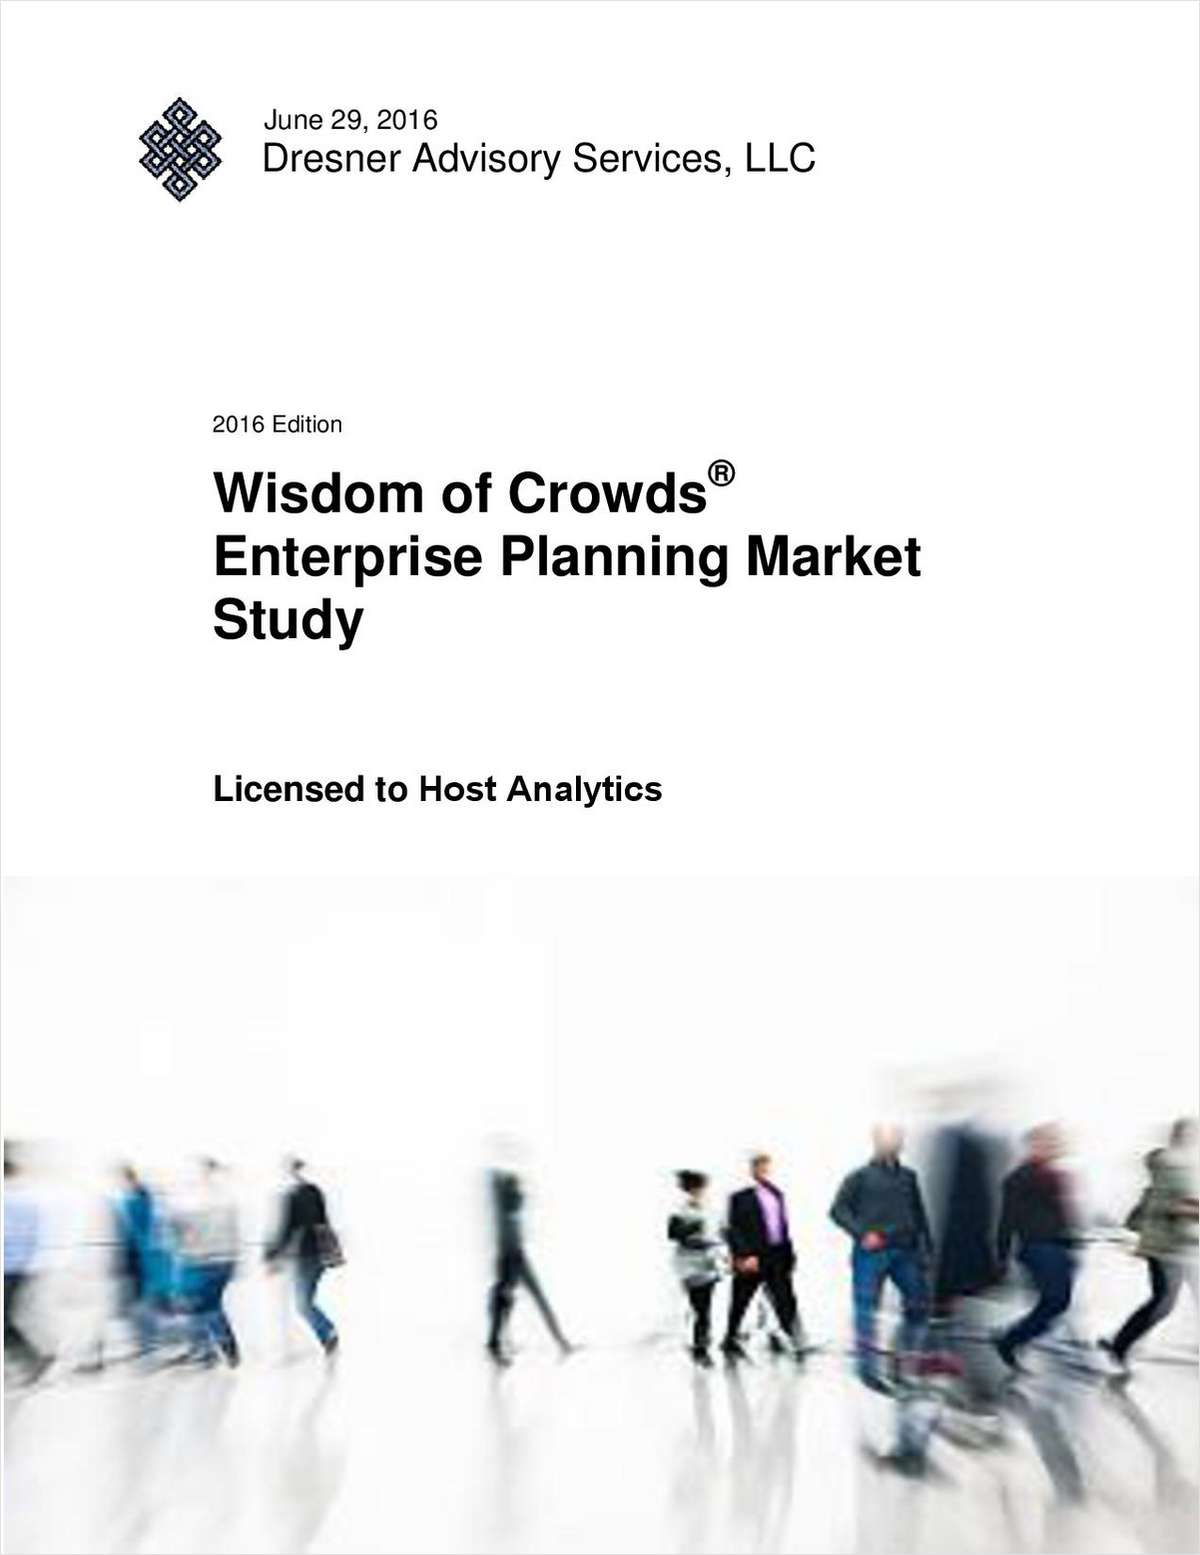 Wisdom of Crowds® Enterprise Planning Market Study